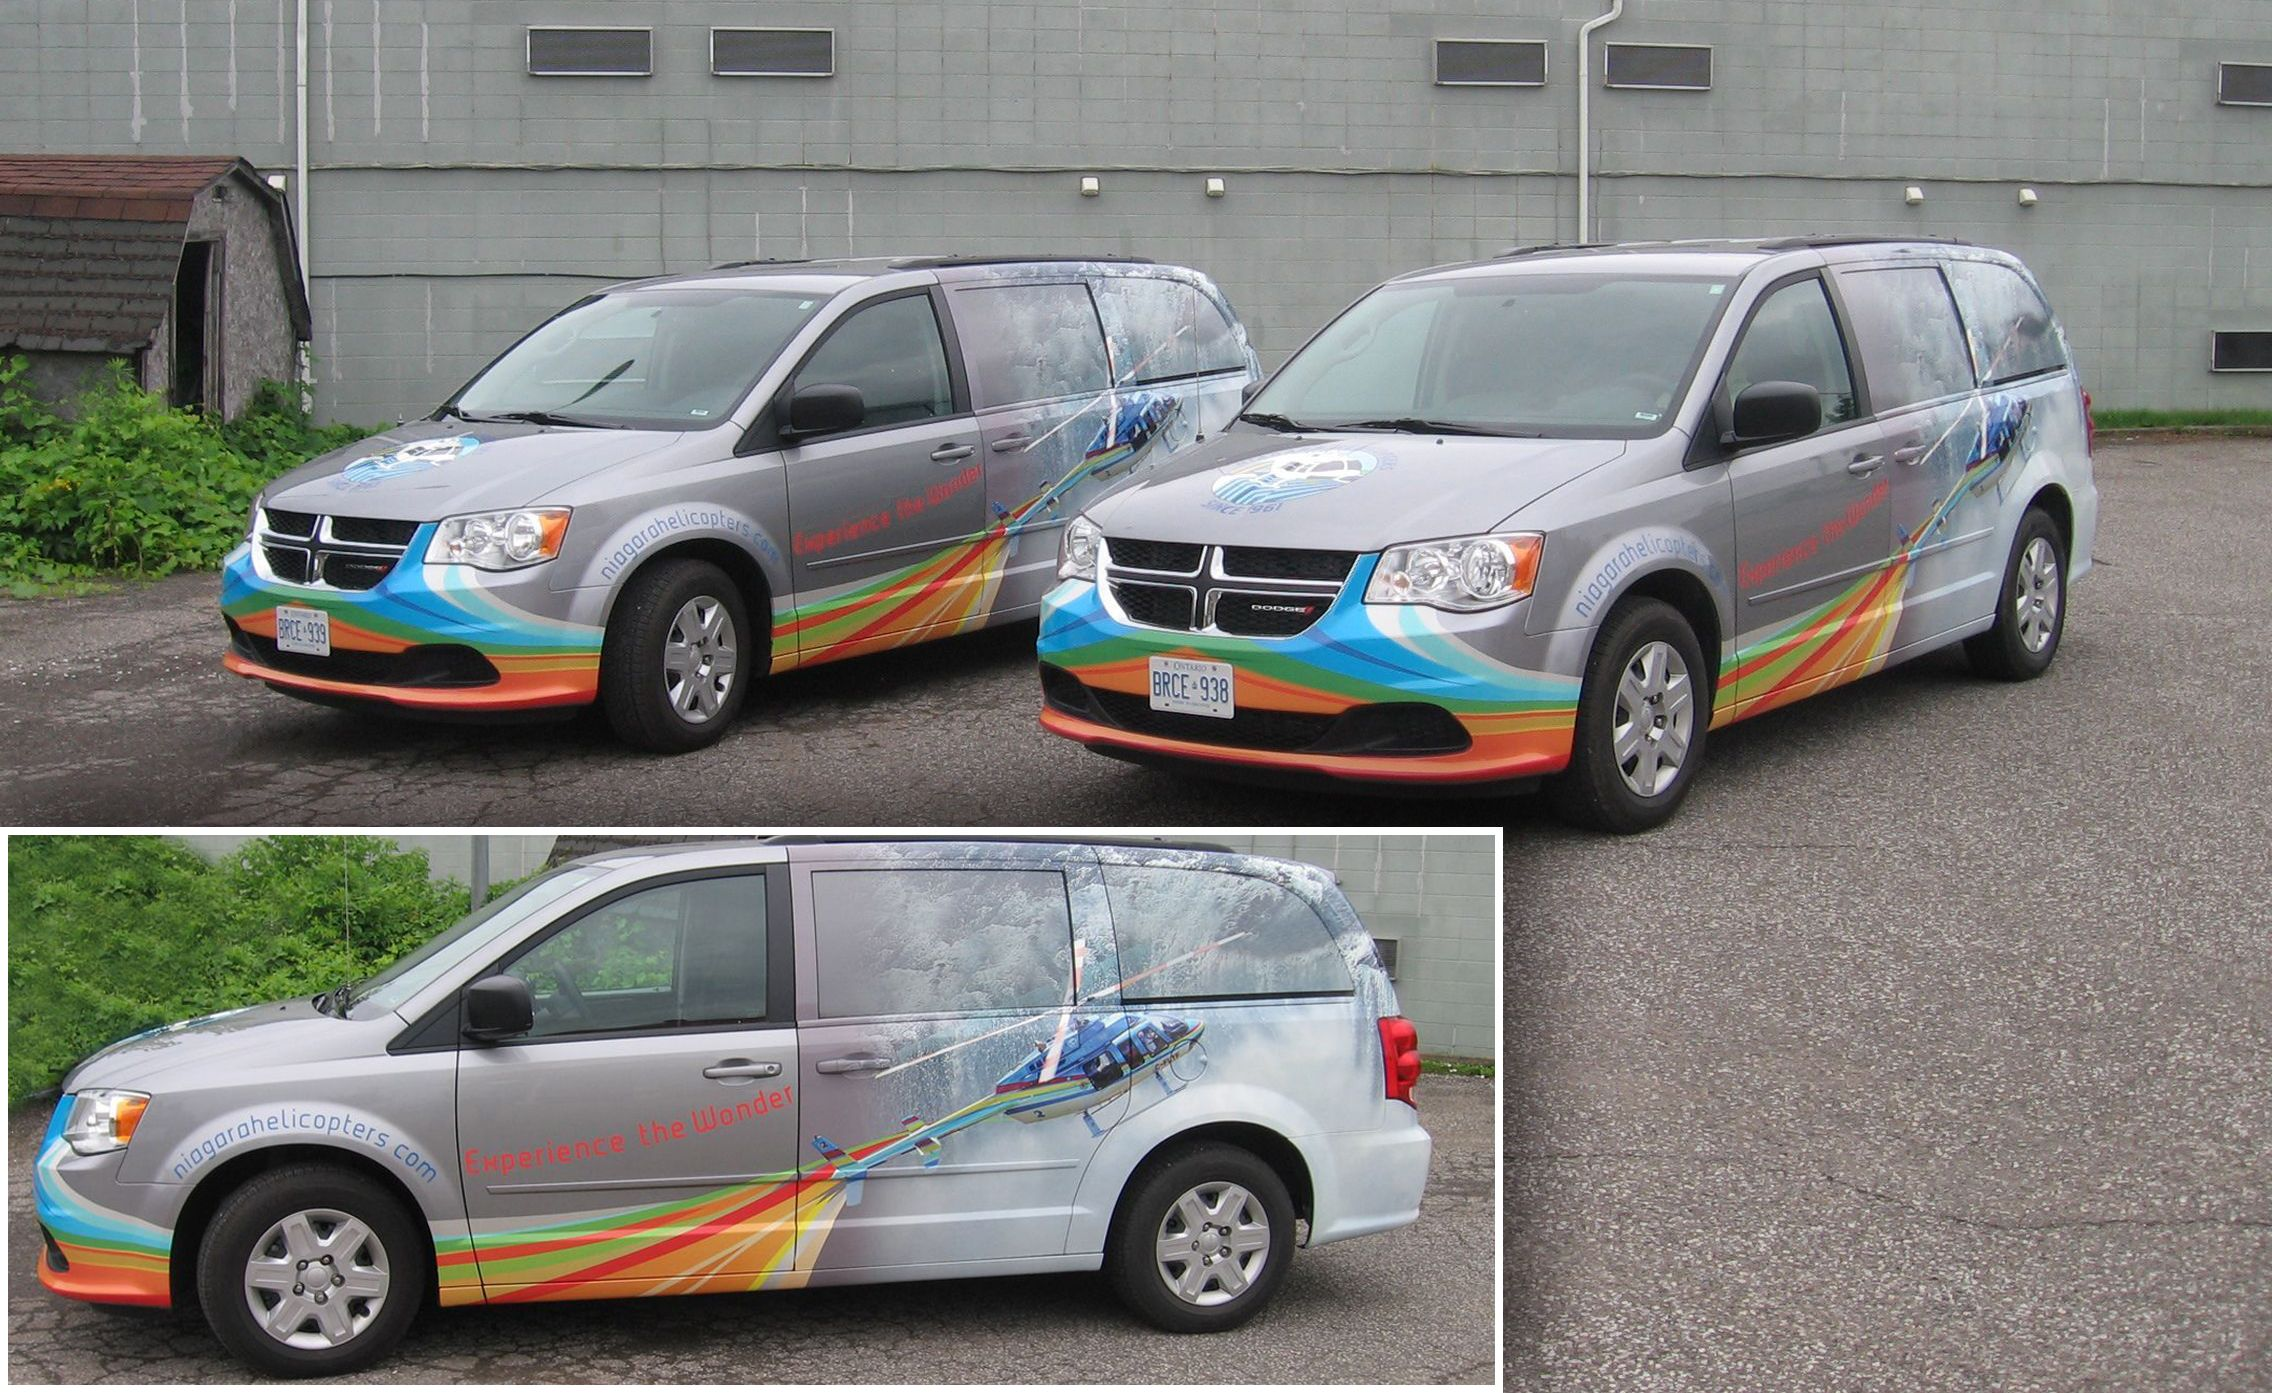 The completed van wrap for Niagara Helicopters 2013